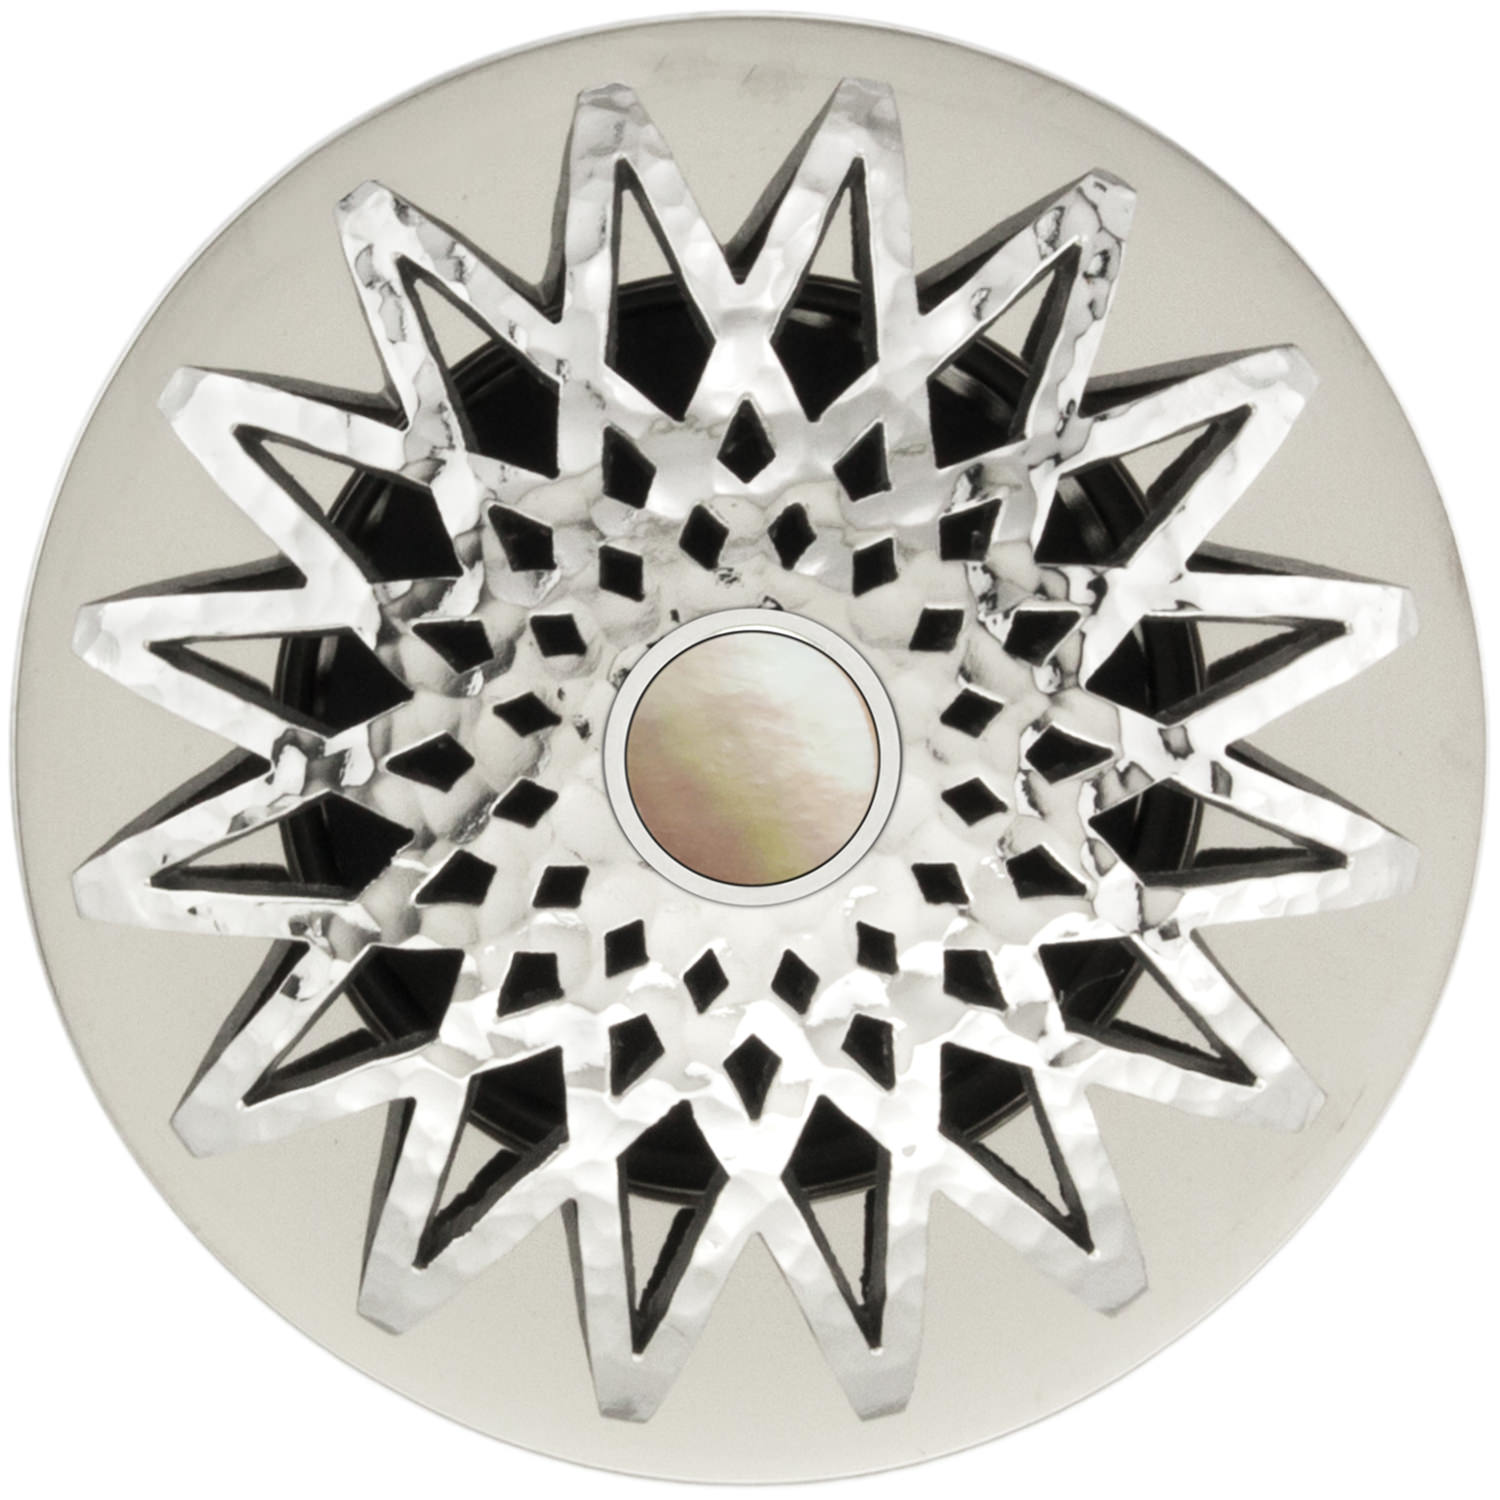 "Linkasink Drains - Decorative Grid Strainer 1.5"" - Star D015PH-SCR02-N - Hammered - Mother of Pearl Screw"